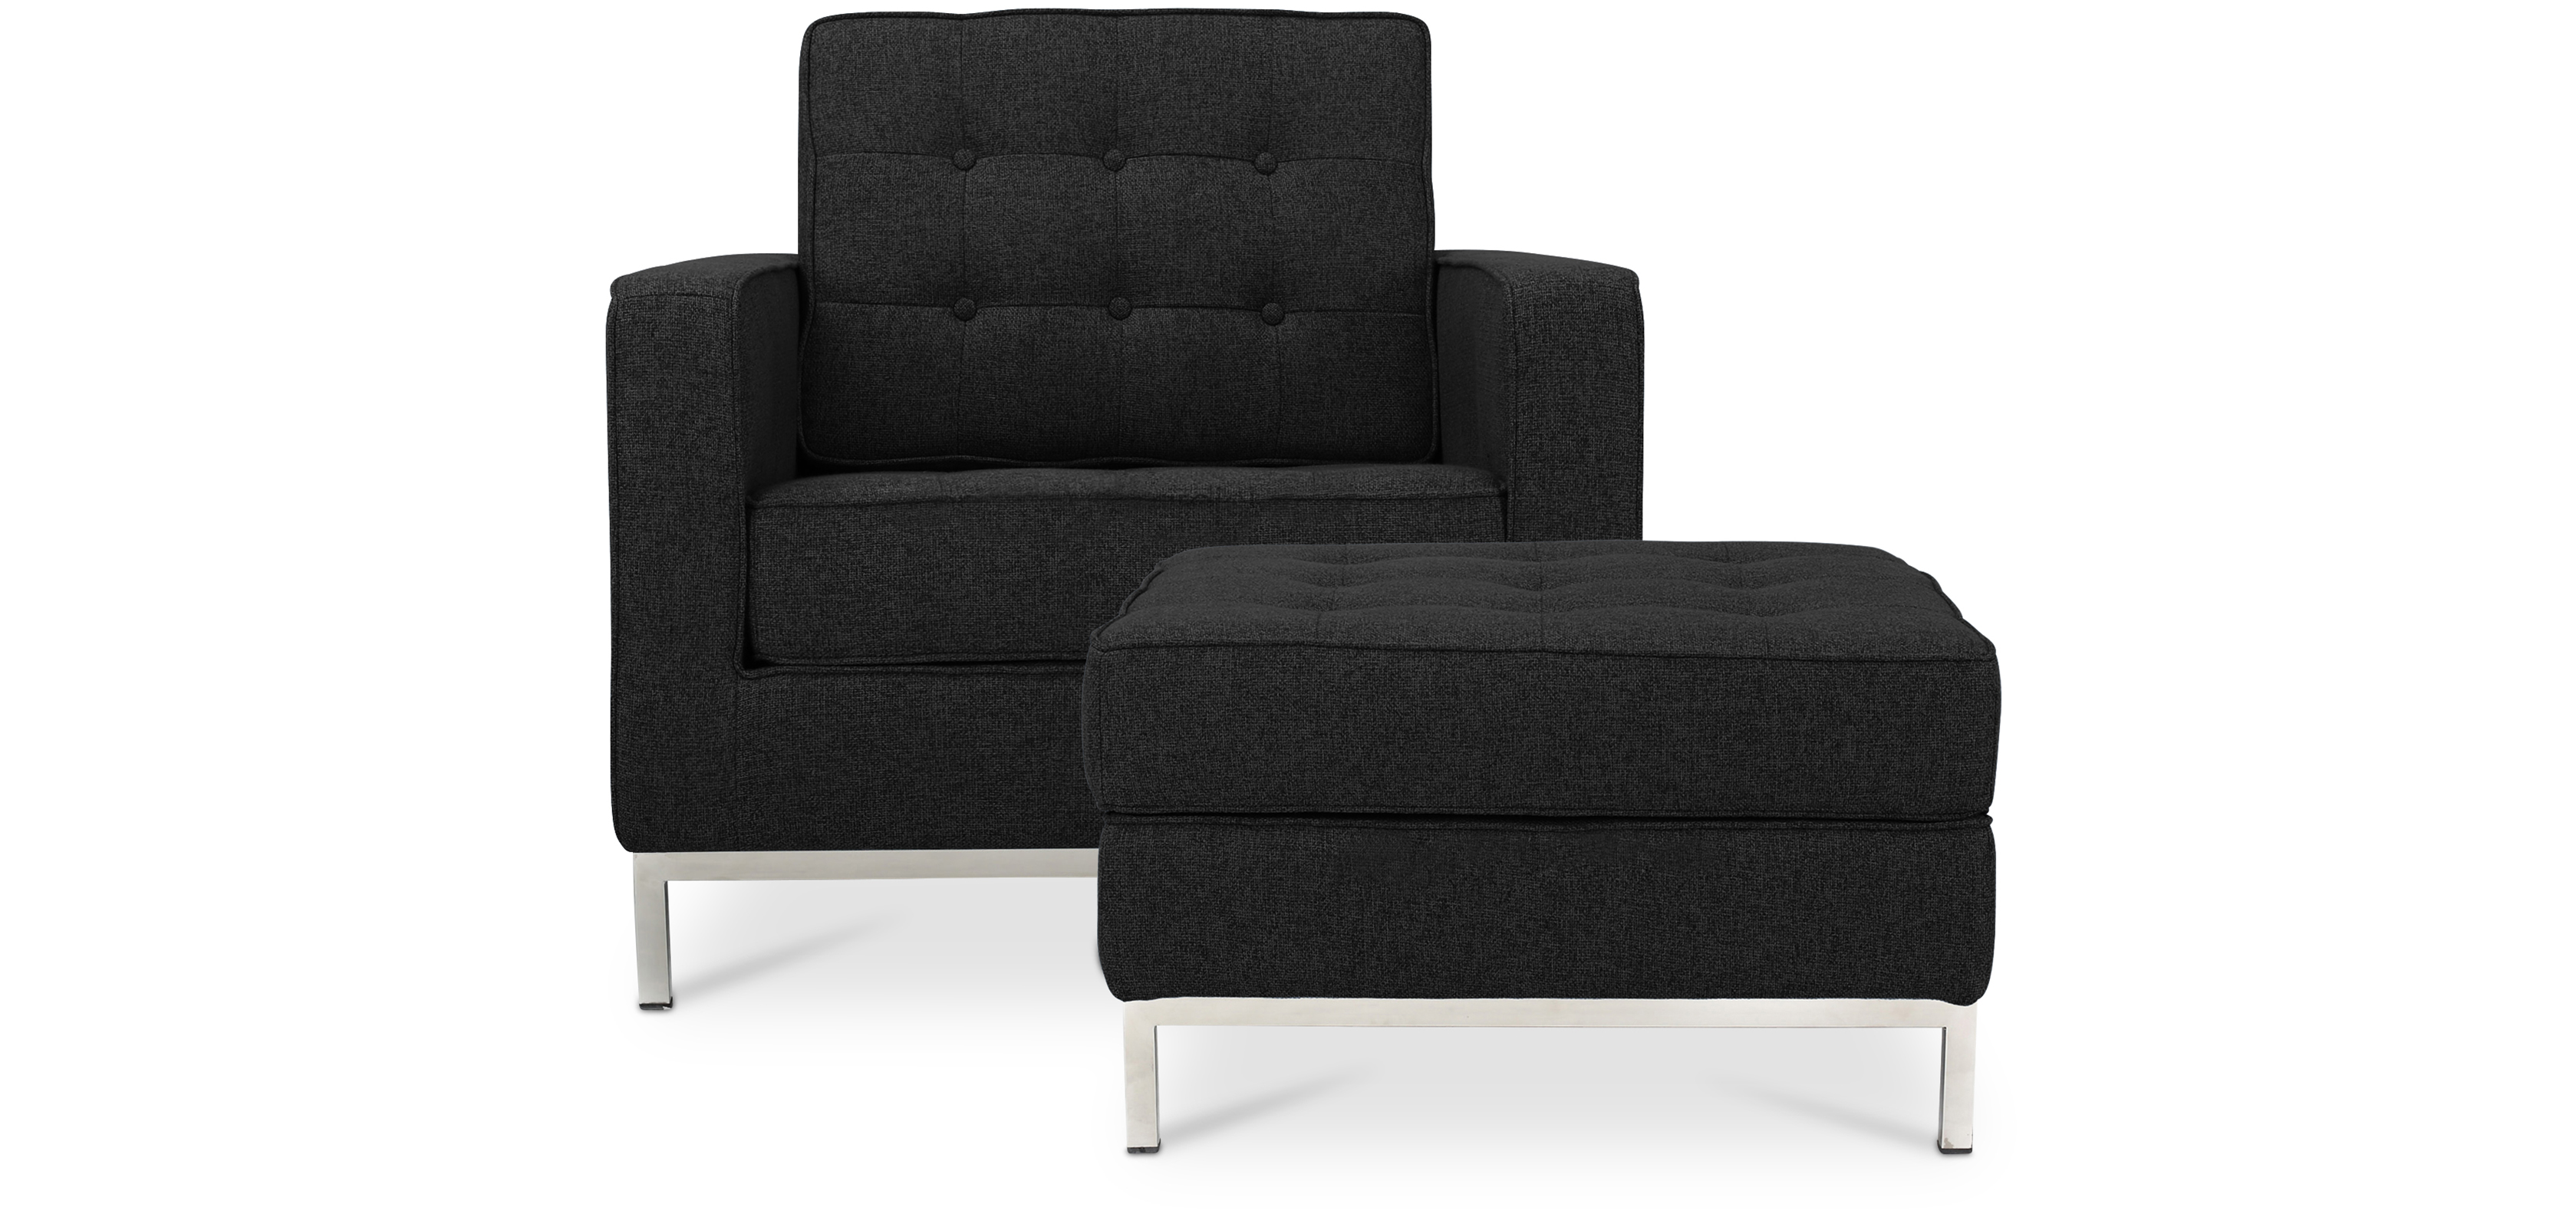 fauteuil knoll avec ottoman assorti style florence knoll cachemire pas cher. Black Bedroom Furniture Sets. Home Design Ideas